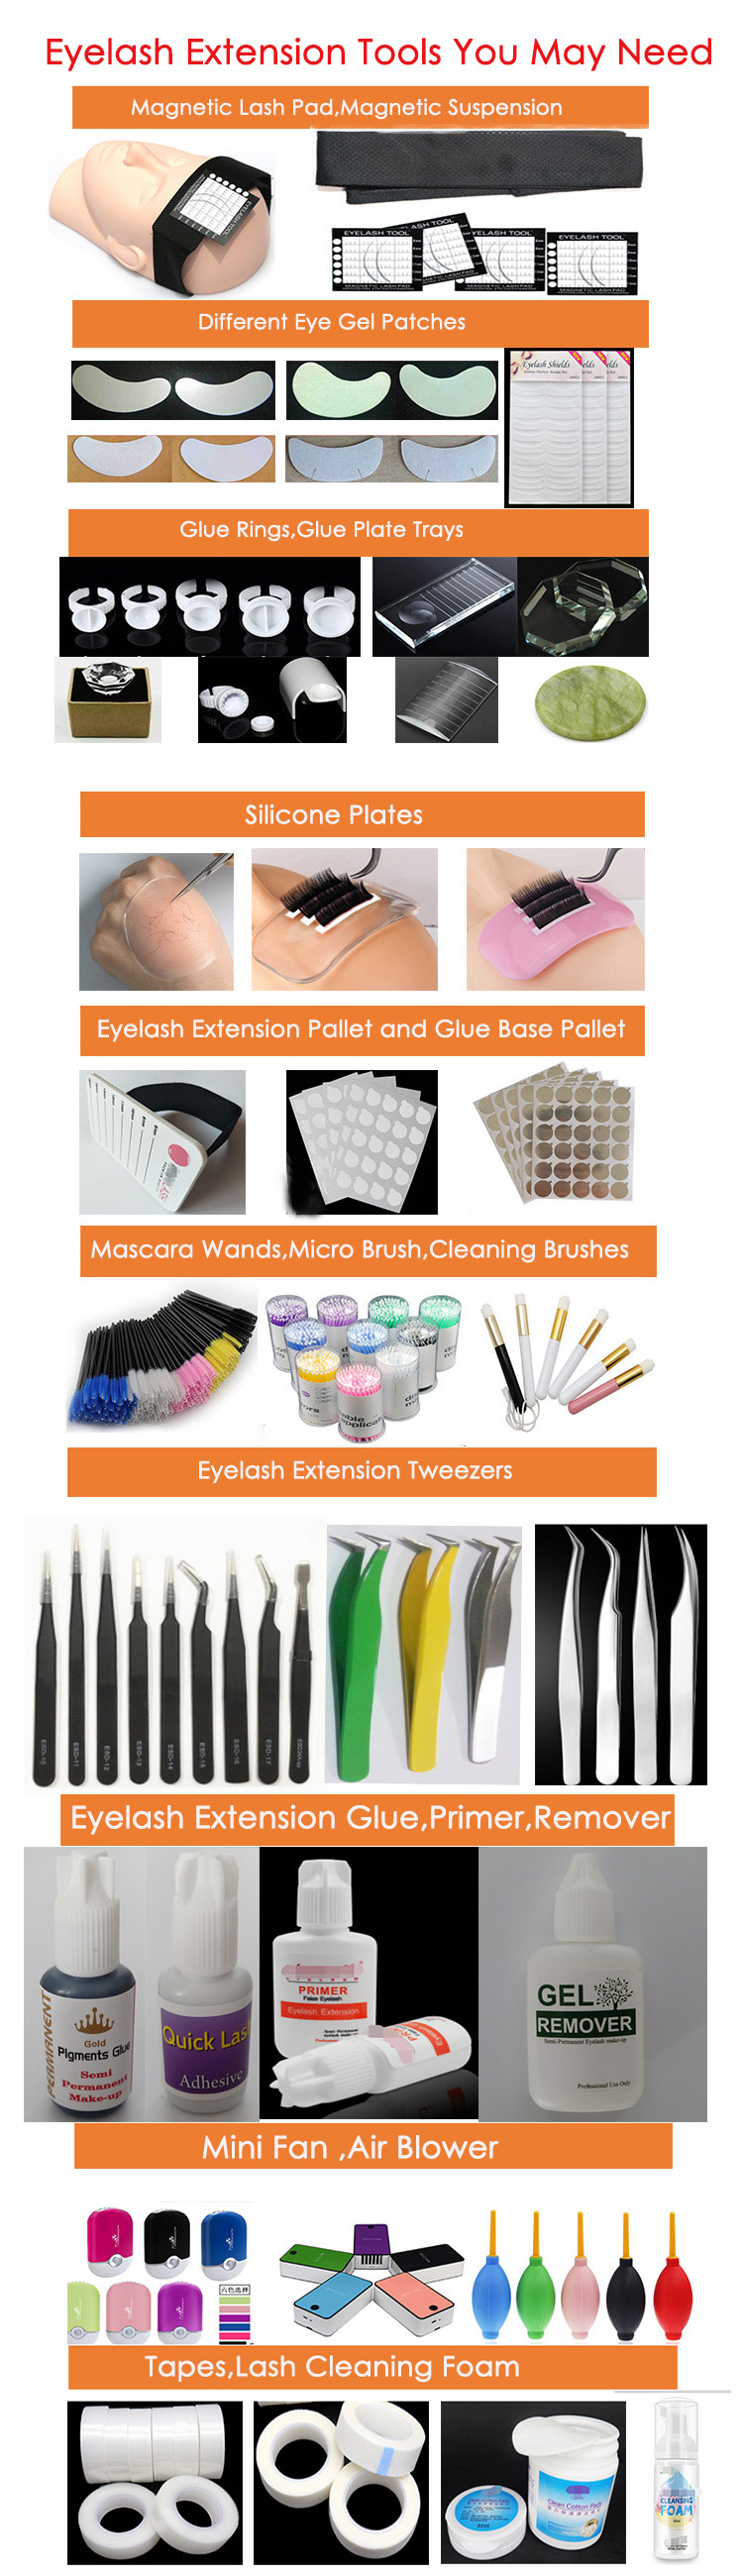 lash-extensions-tools-factory-supply-China.jpg